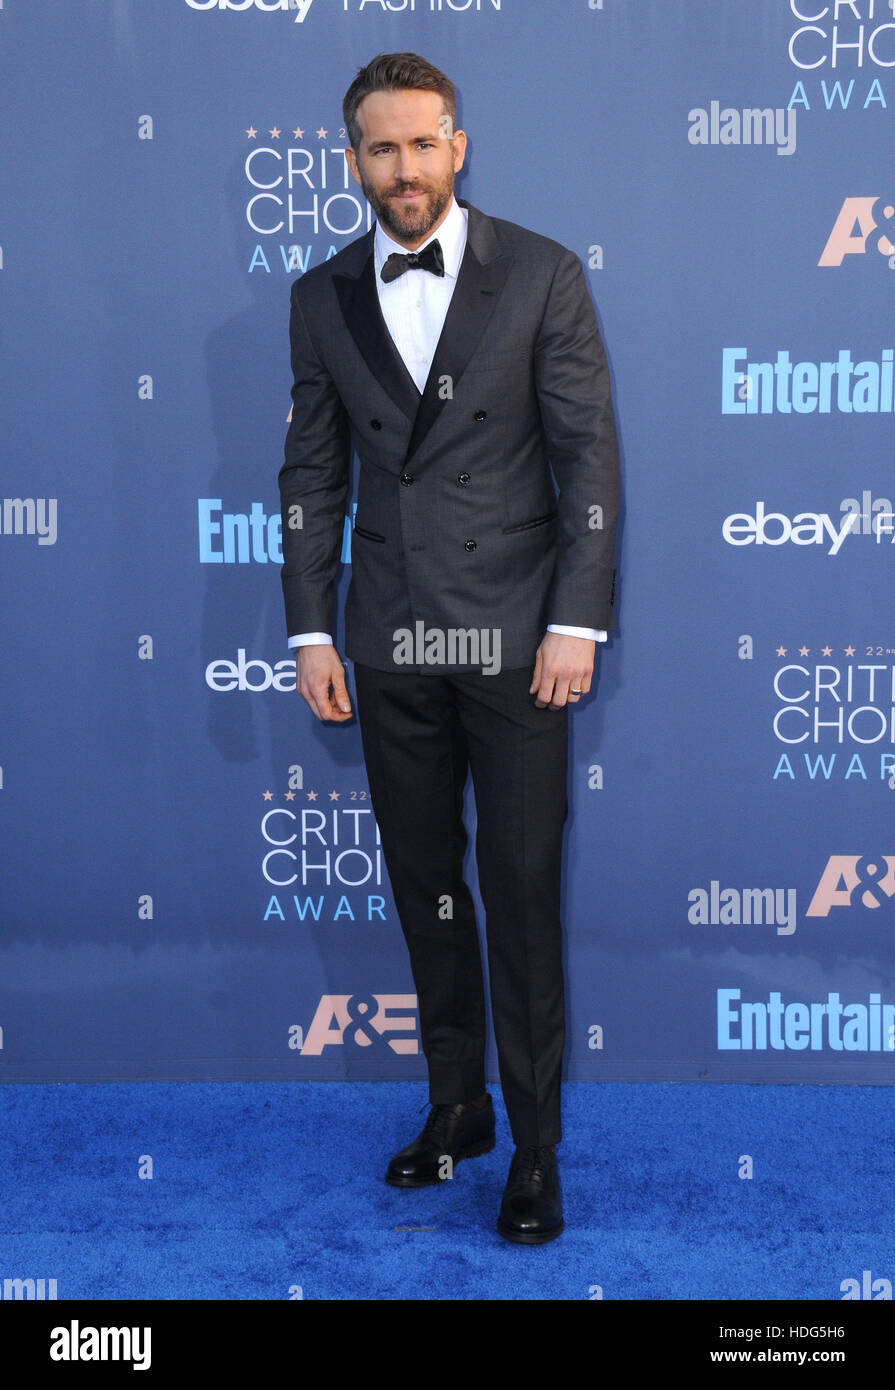 Santa Monica, California, USA. 11th Dec, 2016. Ryan Reynolds. The 22nd Annual Critics' Choice Awards held at - Stock Image